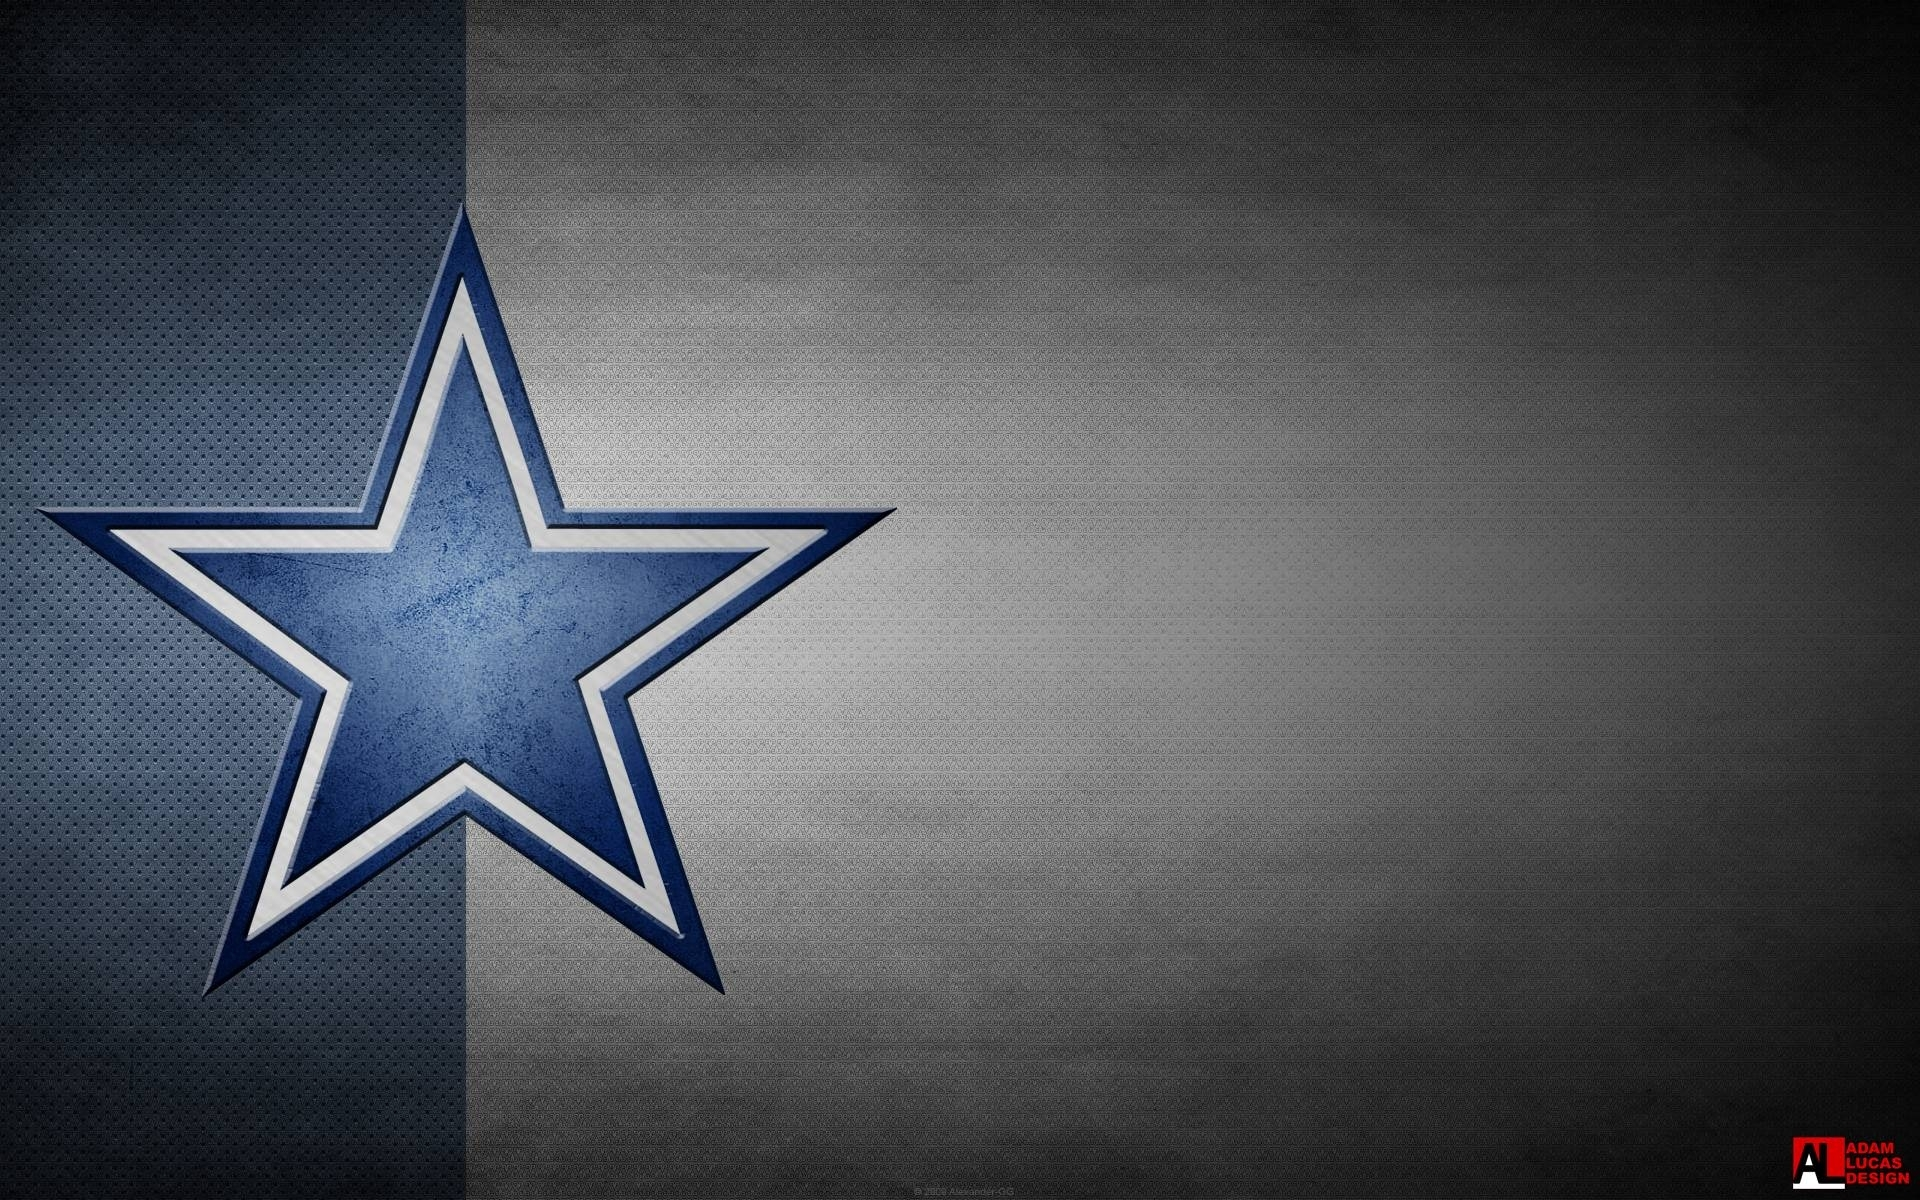 dallas cowboys image wallpapers - wallpaper cave